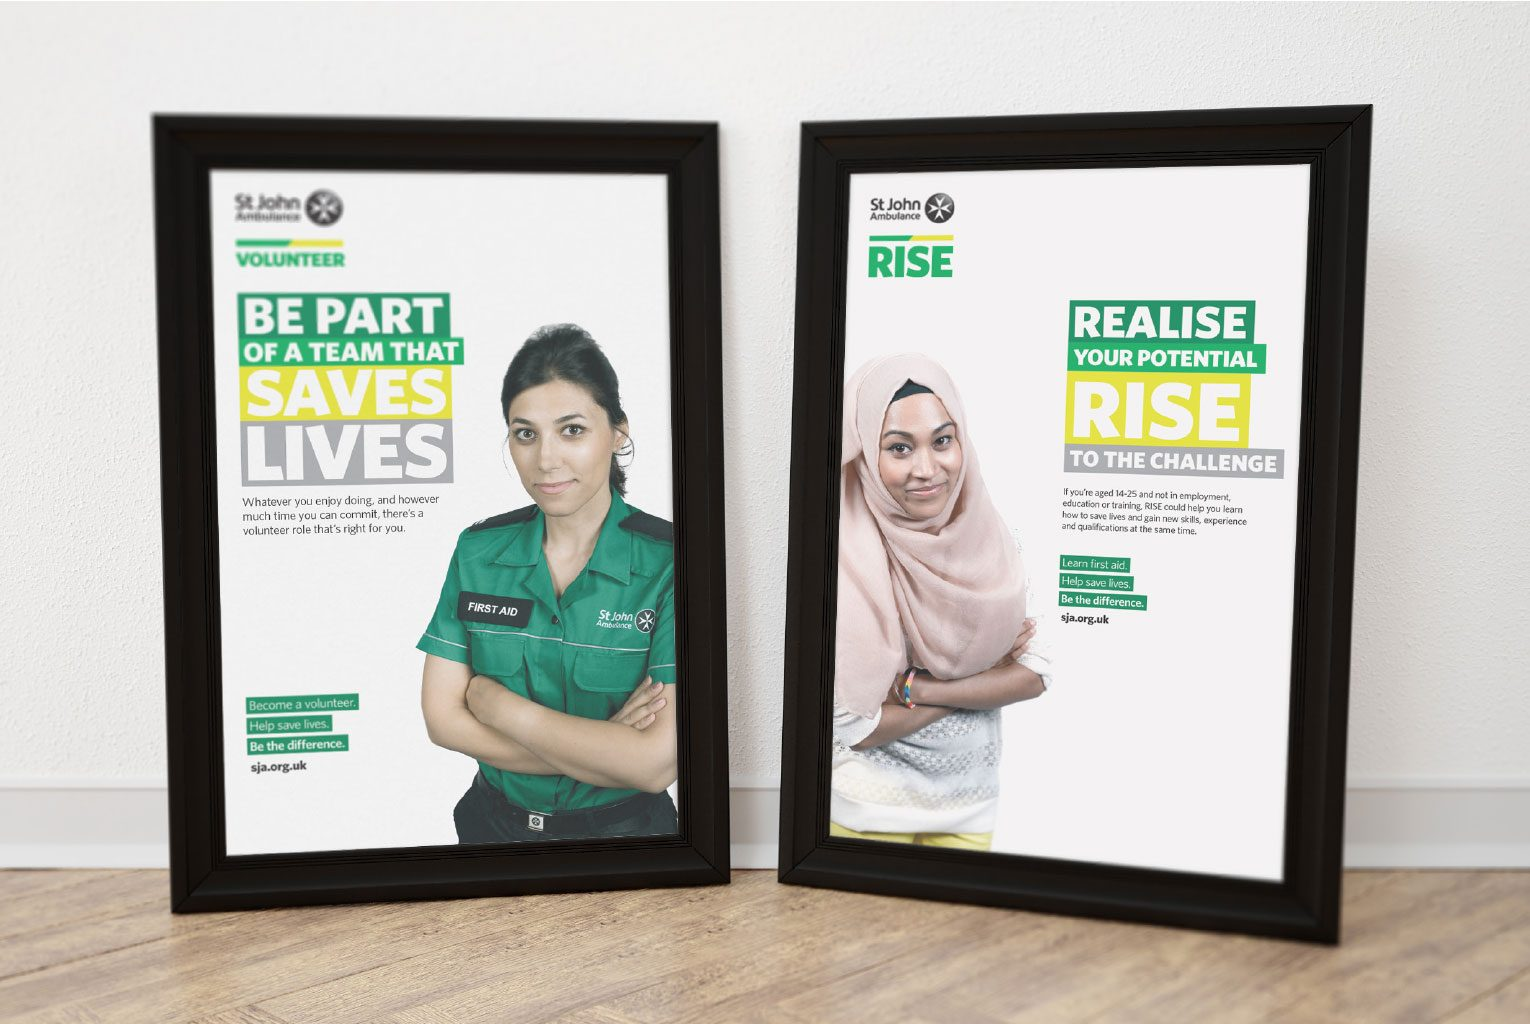 Framed posters in the new brand encouraging people to become volunteers for St John Ambulance.